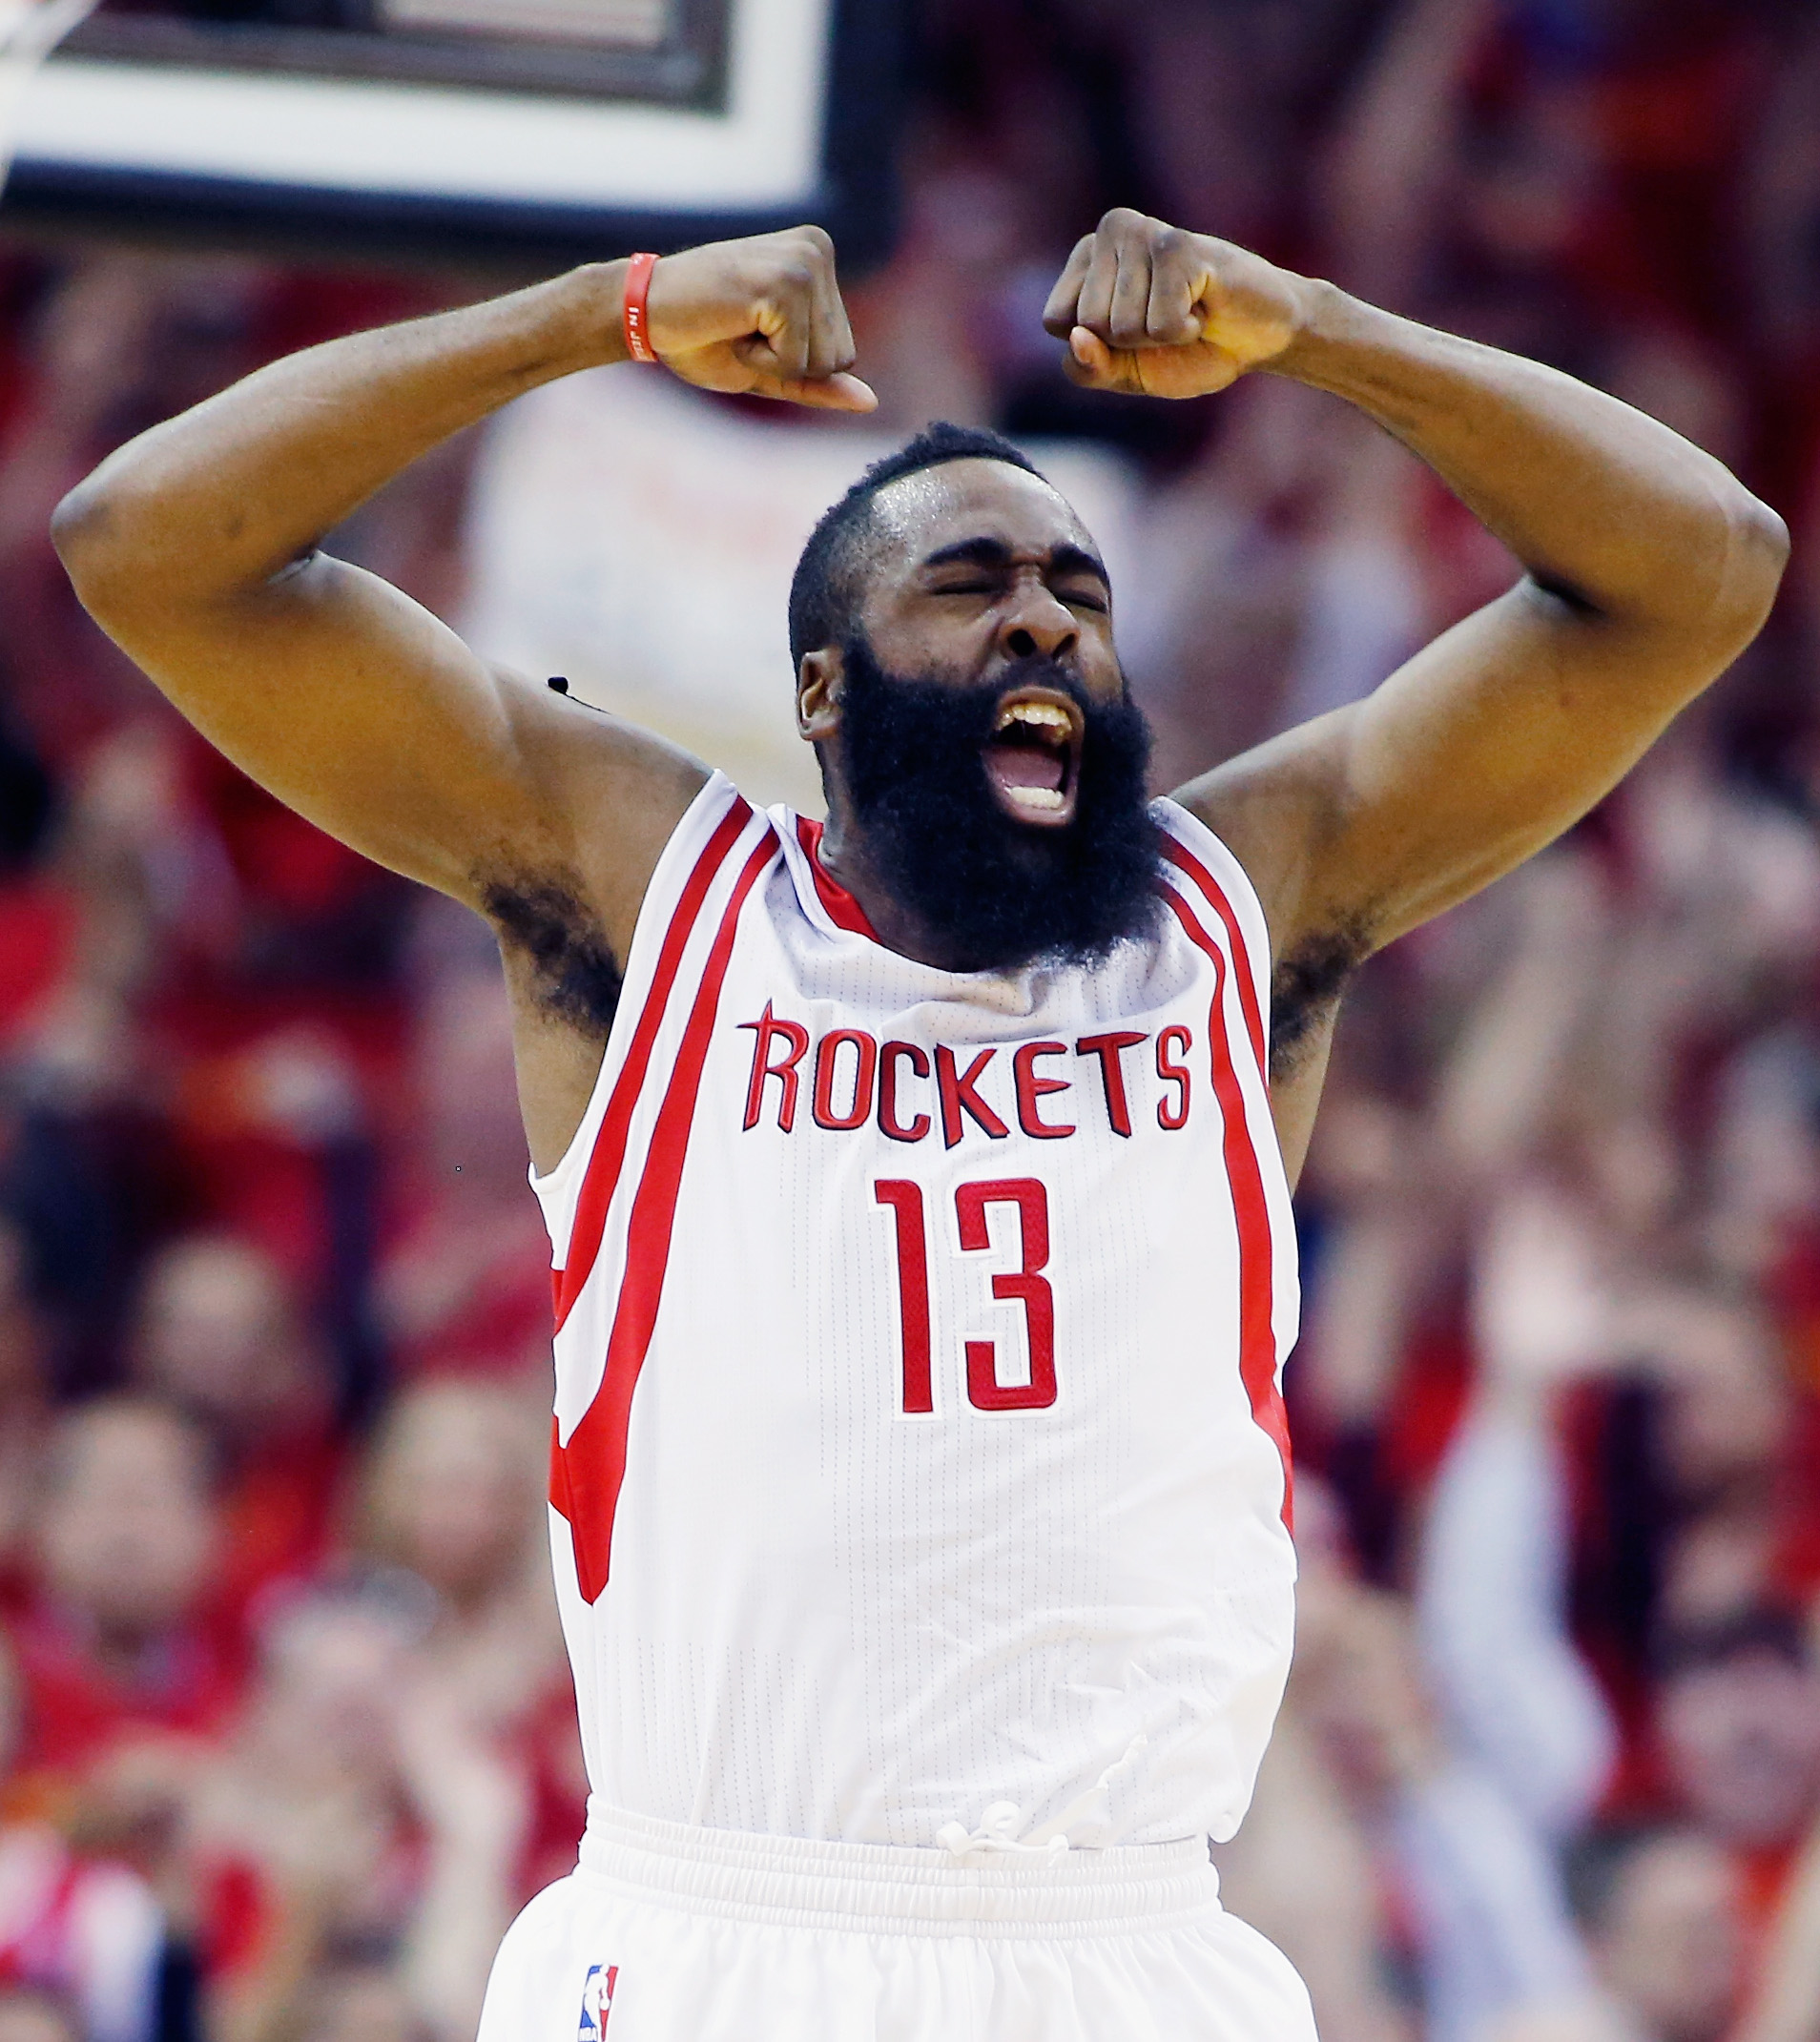 HOUSTON, TX - APRIL 28:  James Harden #13 of the Houston Rockets celebrates a late basket against the Dallas Mavericks during Game Five in the Western Conference Quarterfinals of the 2015 NBA Playoffs on April 28, 2015 at the Toyota Center in Houston, Tex